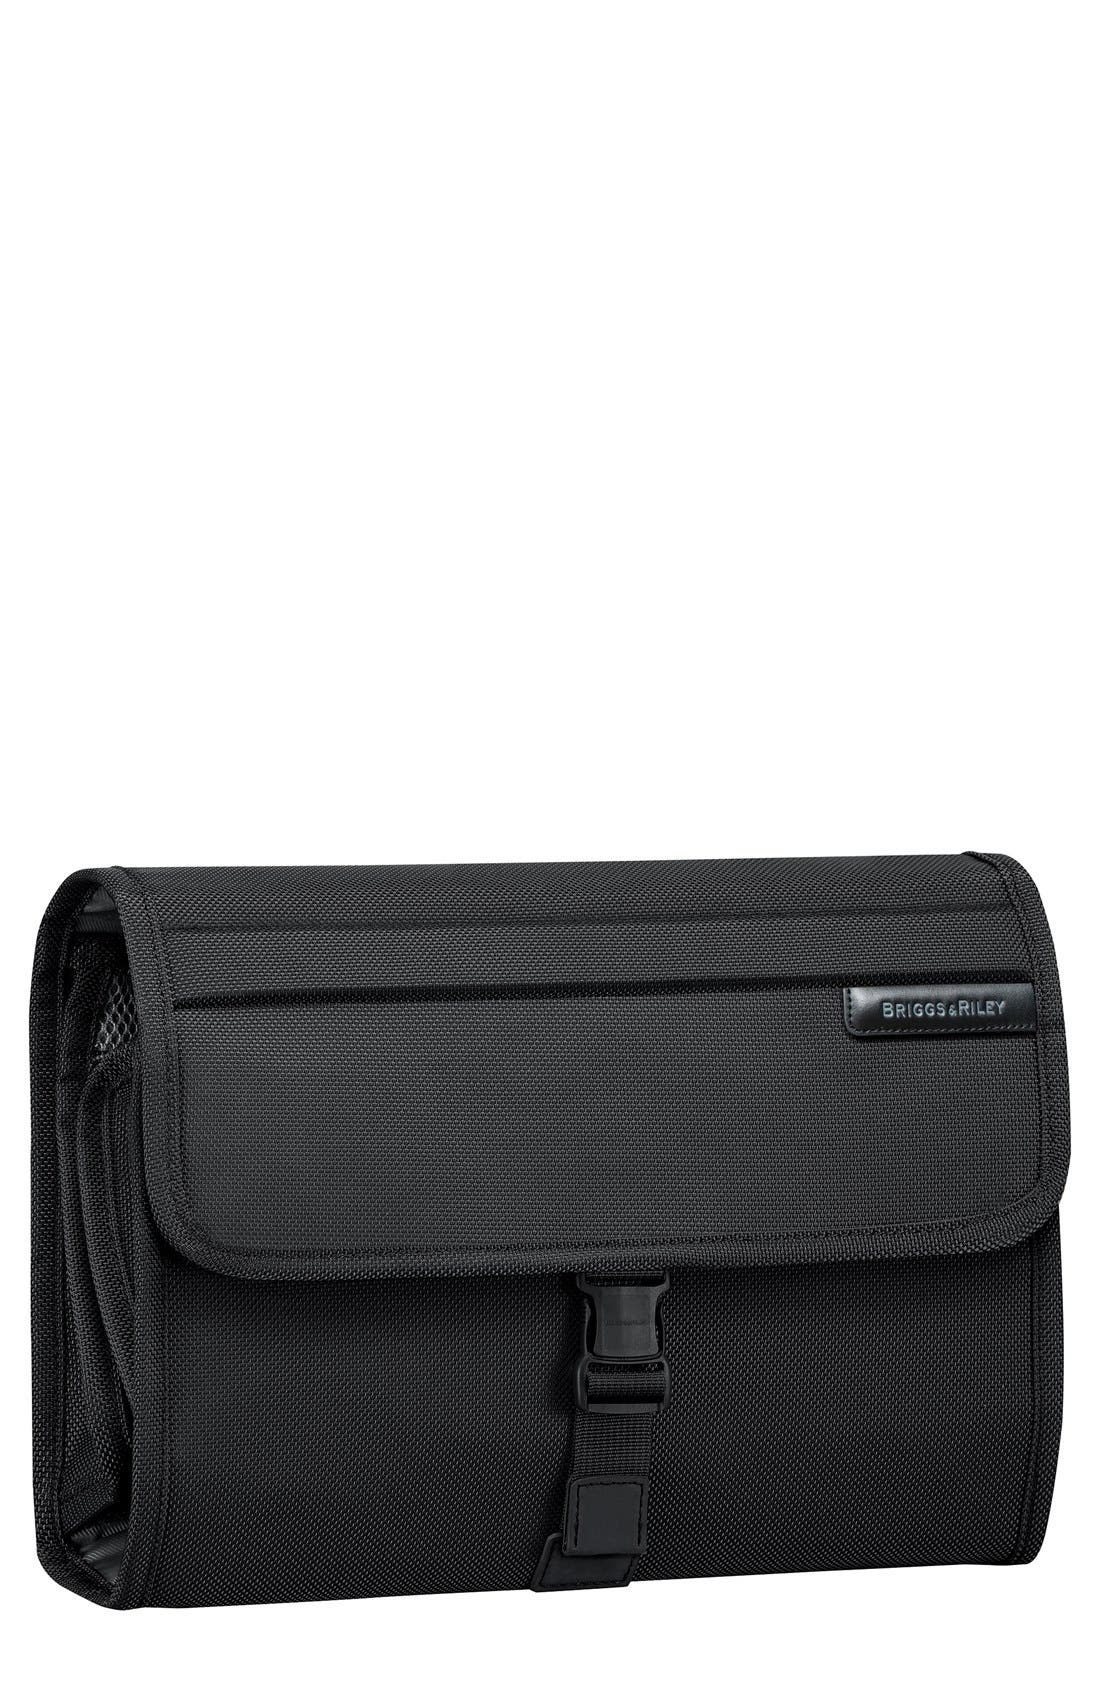 Briggs & Riley 'Baseline Deluxe' Hanging Toiletry Kit